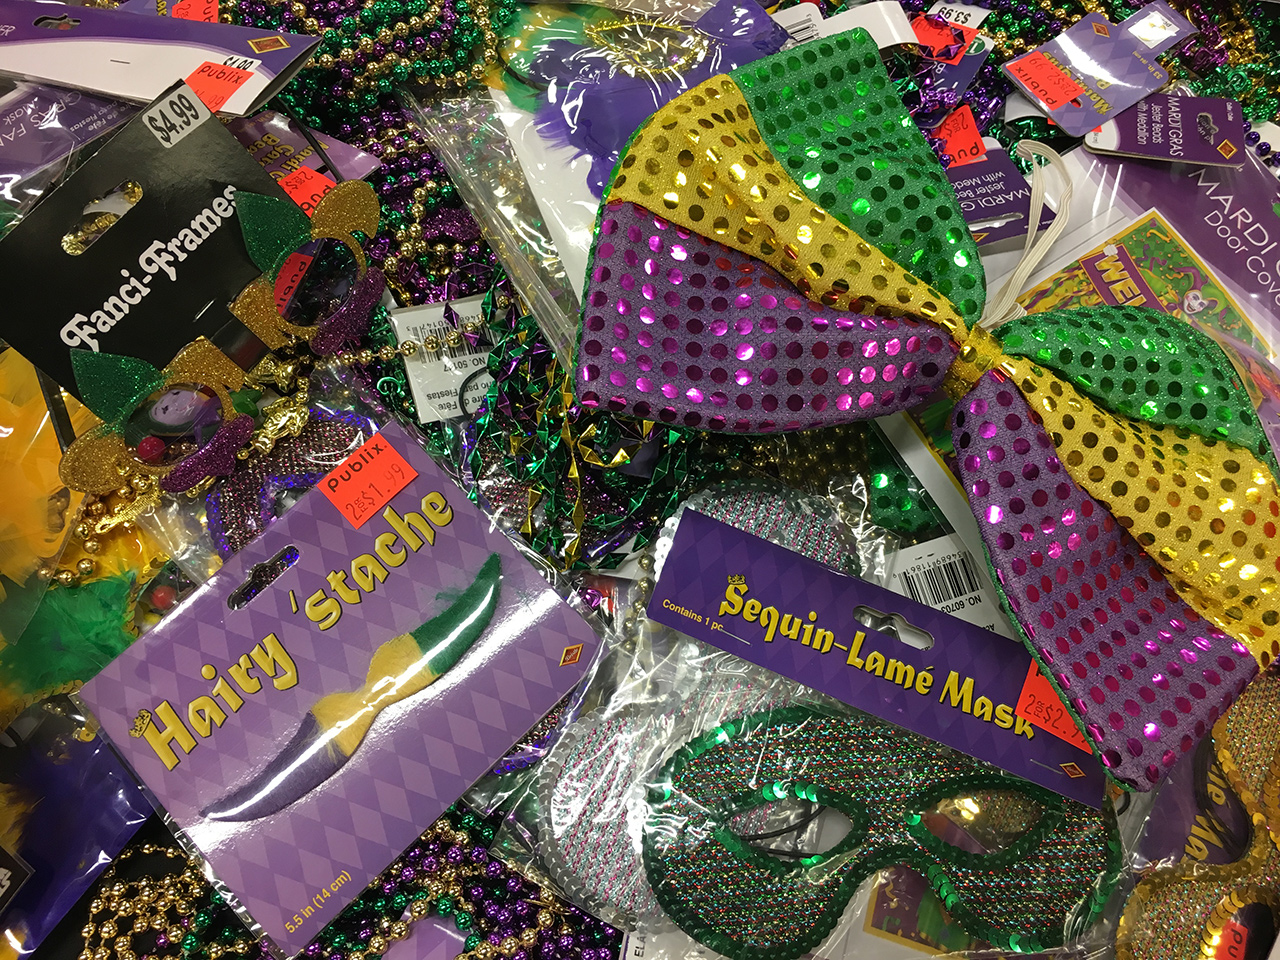 Assorted cheap Mardi Gras costumes and beads, marked down to 2 for $1.99.